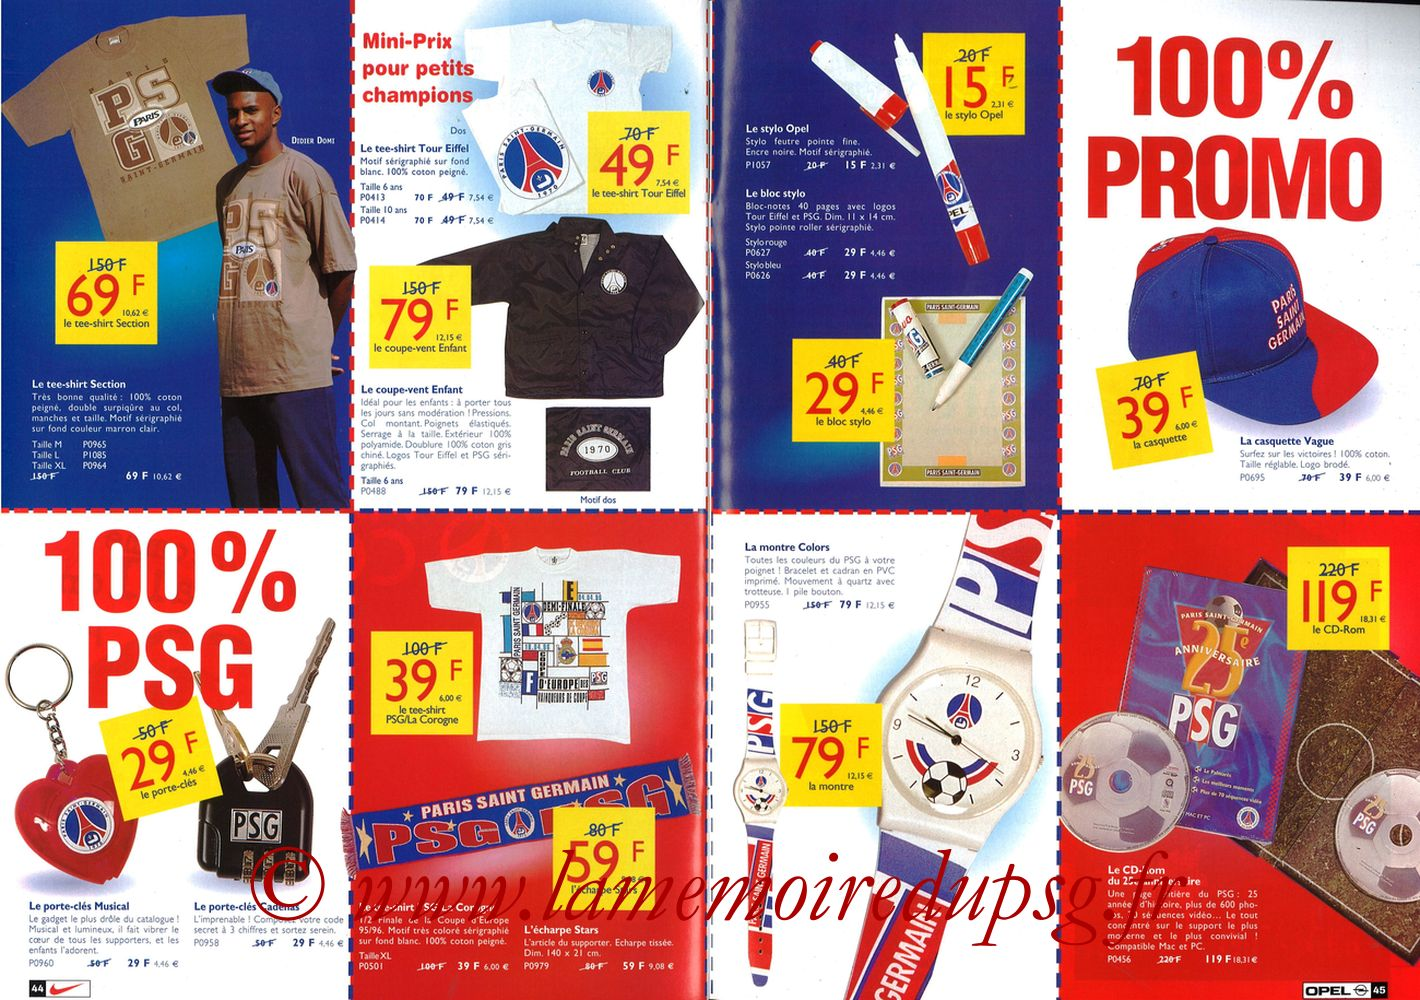 Catalogue PSG - 1998-99 - Pages 44 et 45